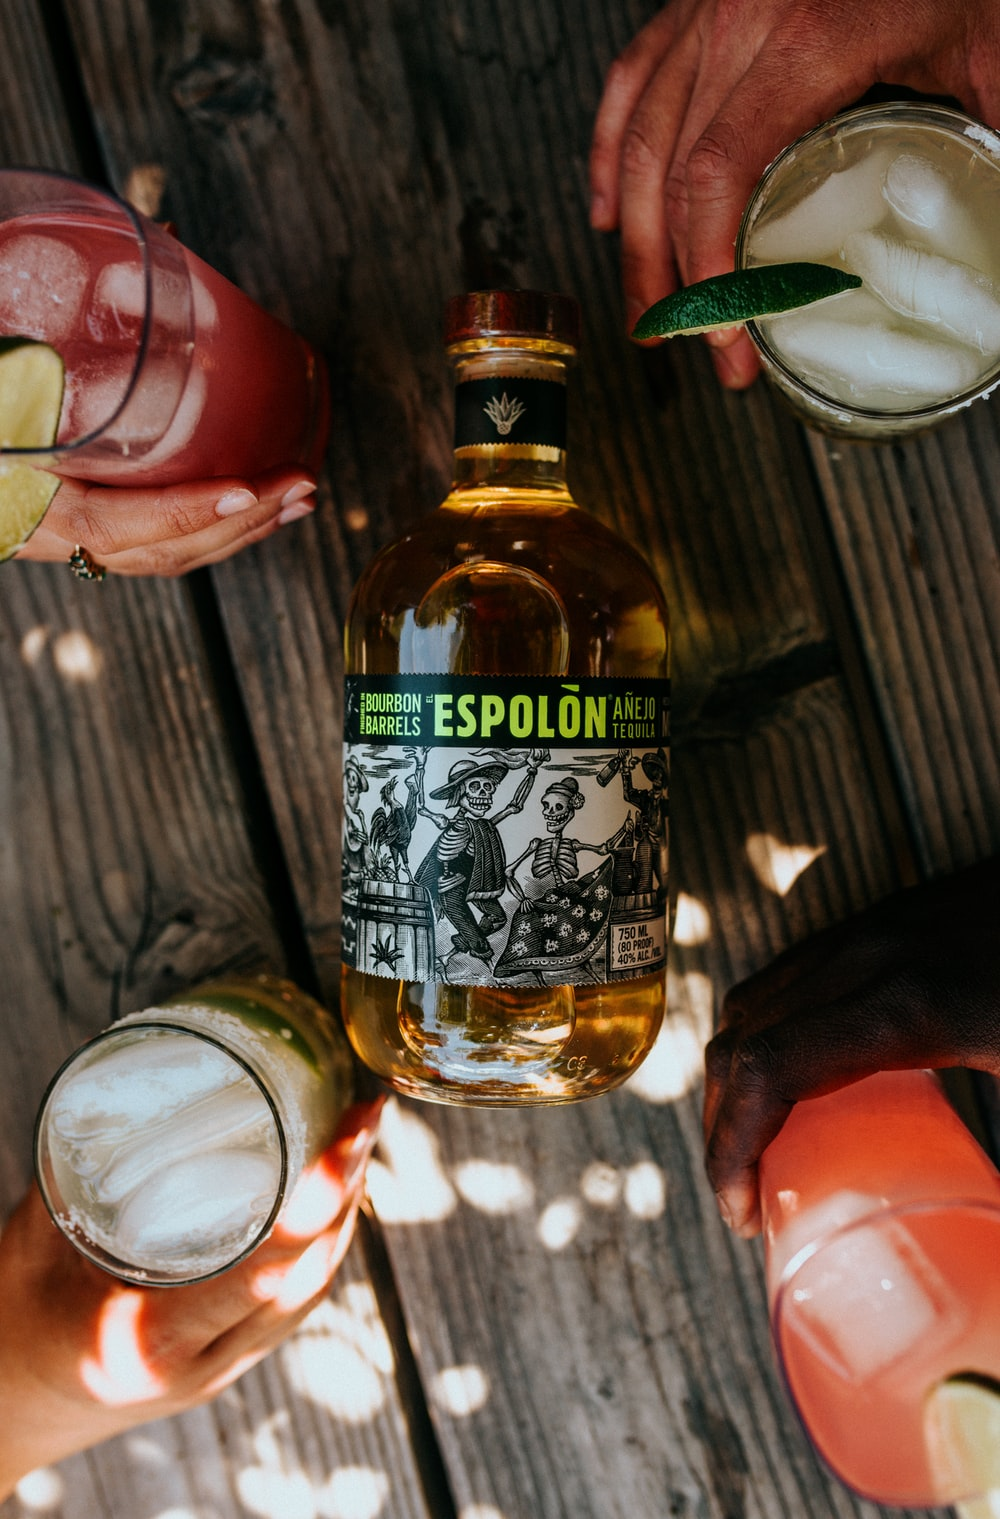 Espolòn Tequila bottle on wooden table